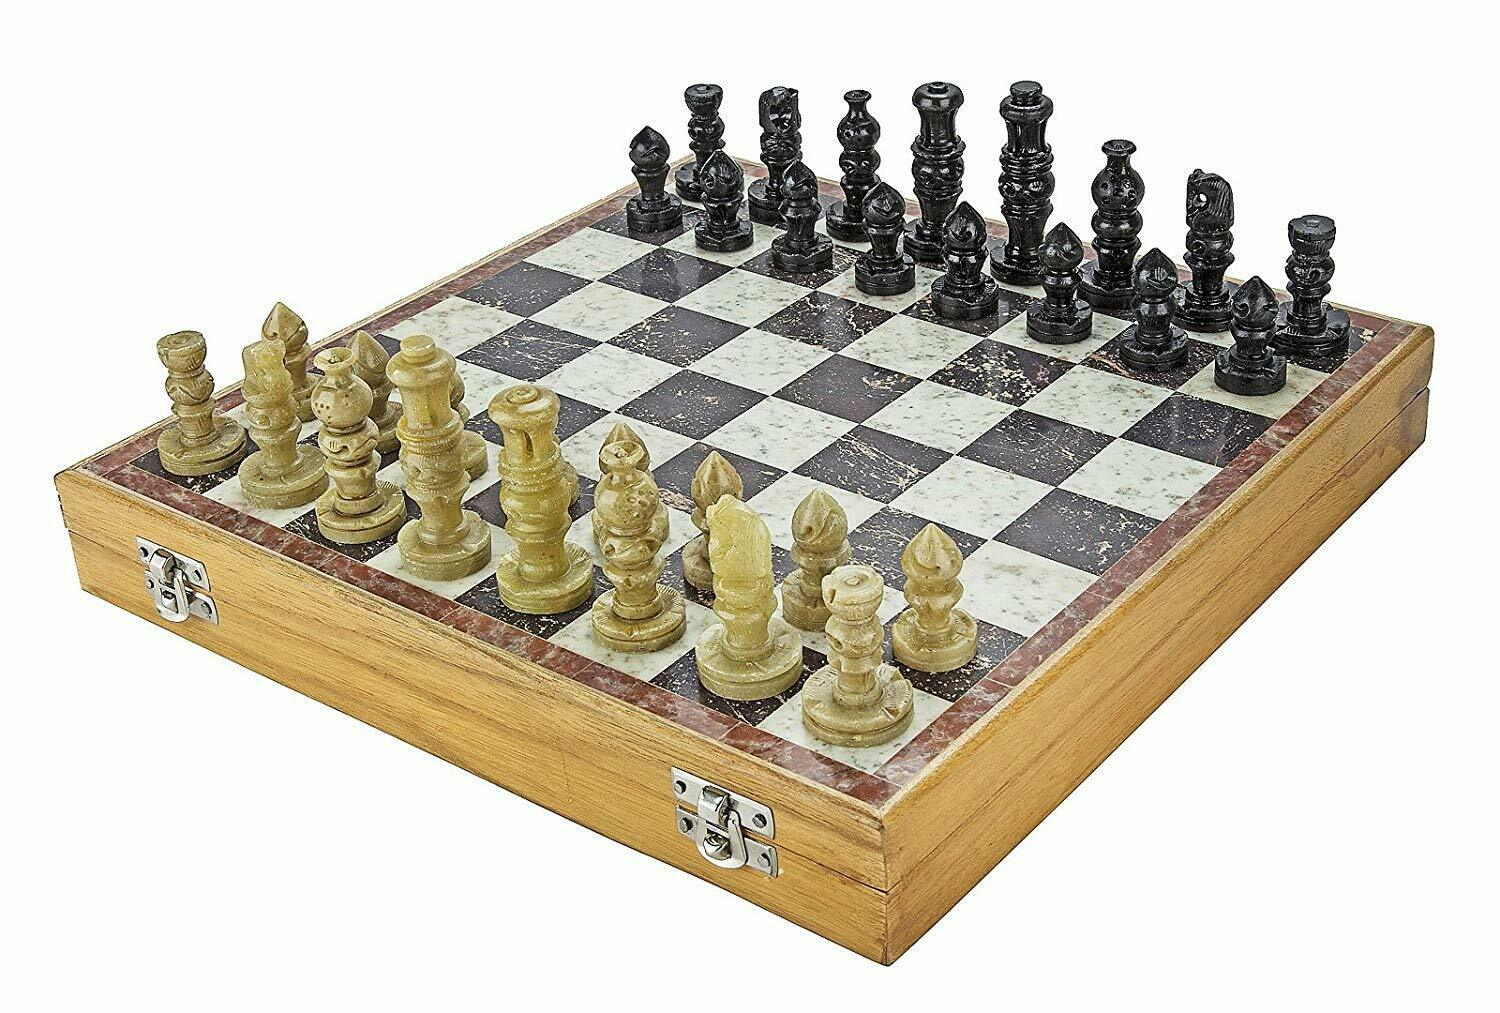 Marble Soapstone Chess Board Game (Multicolour, 12-inch) Collectible Item